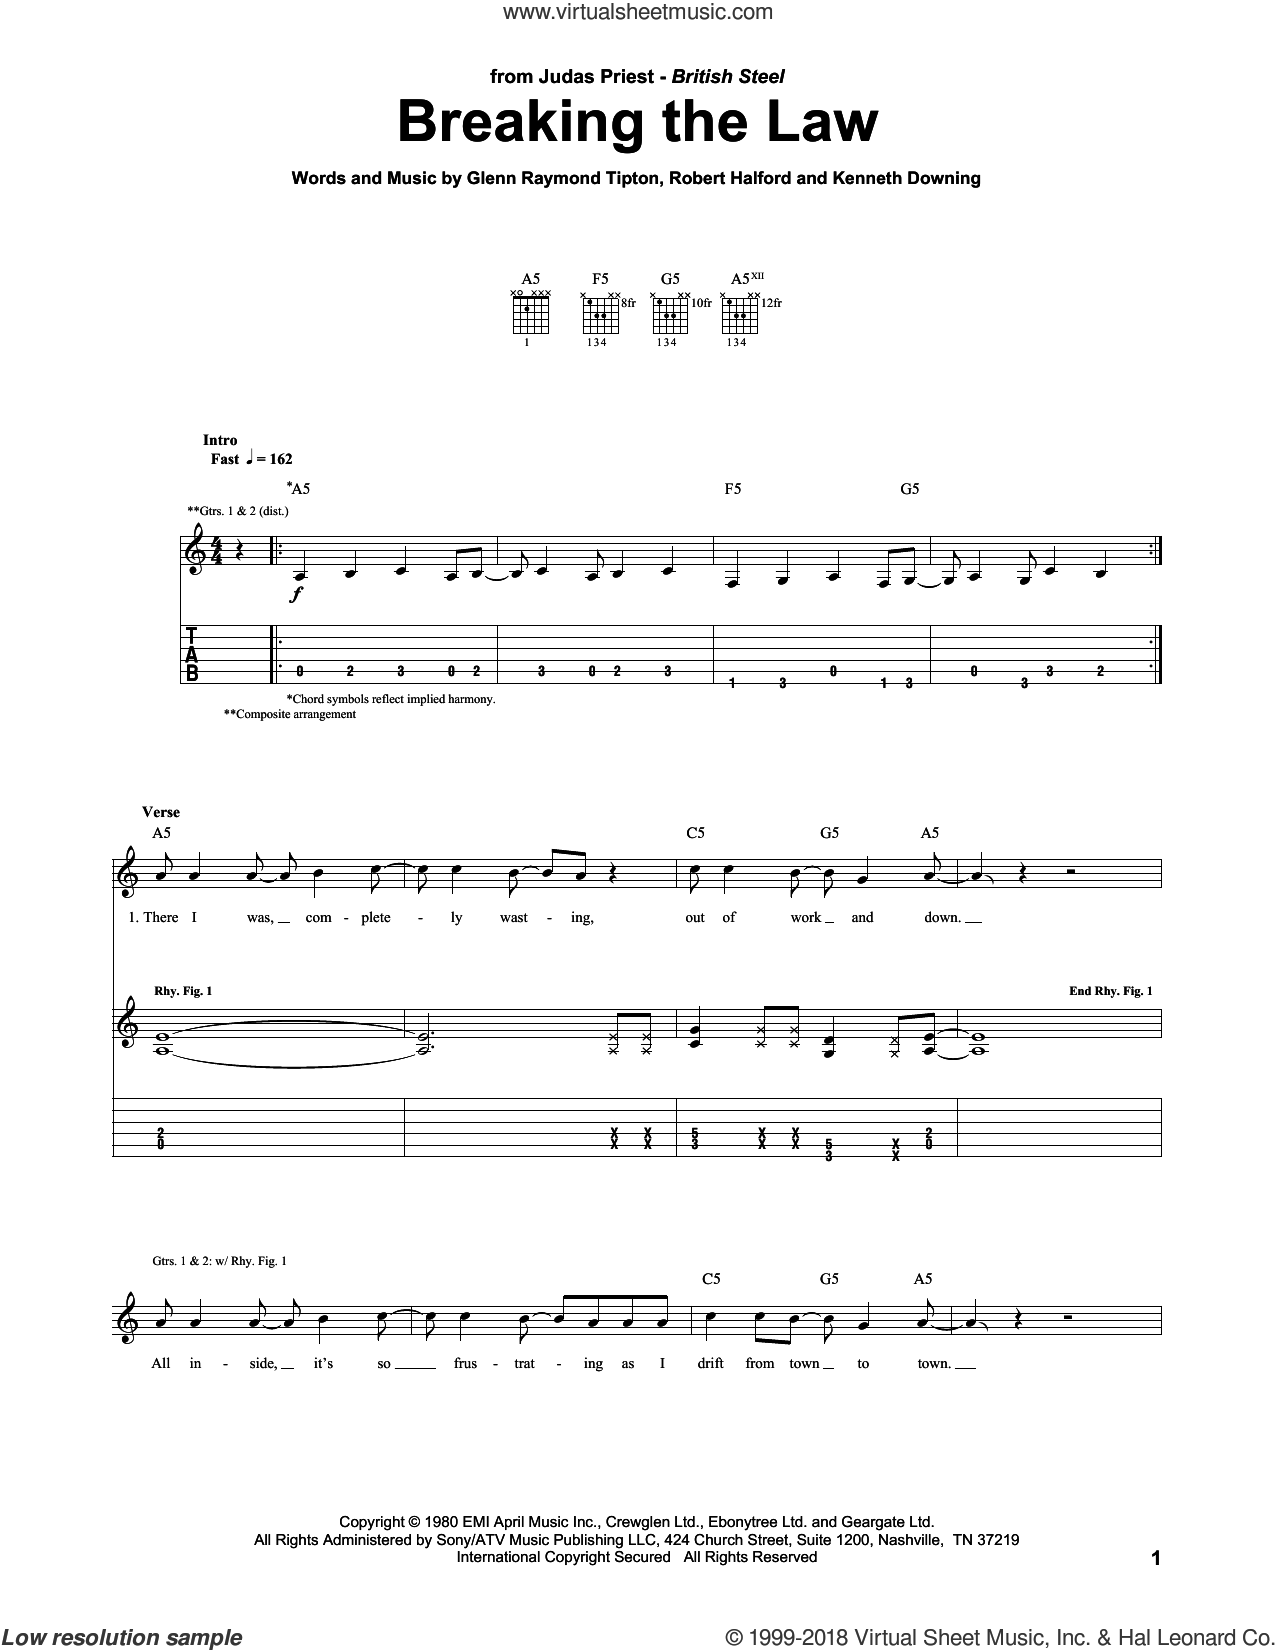 Breaking The Law sheet music for guitar (tablature) by Judas Priest, Glenn Tipton, K.K. Downing and Rob Halford, intermediate skill level